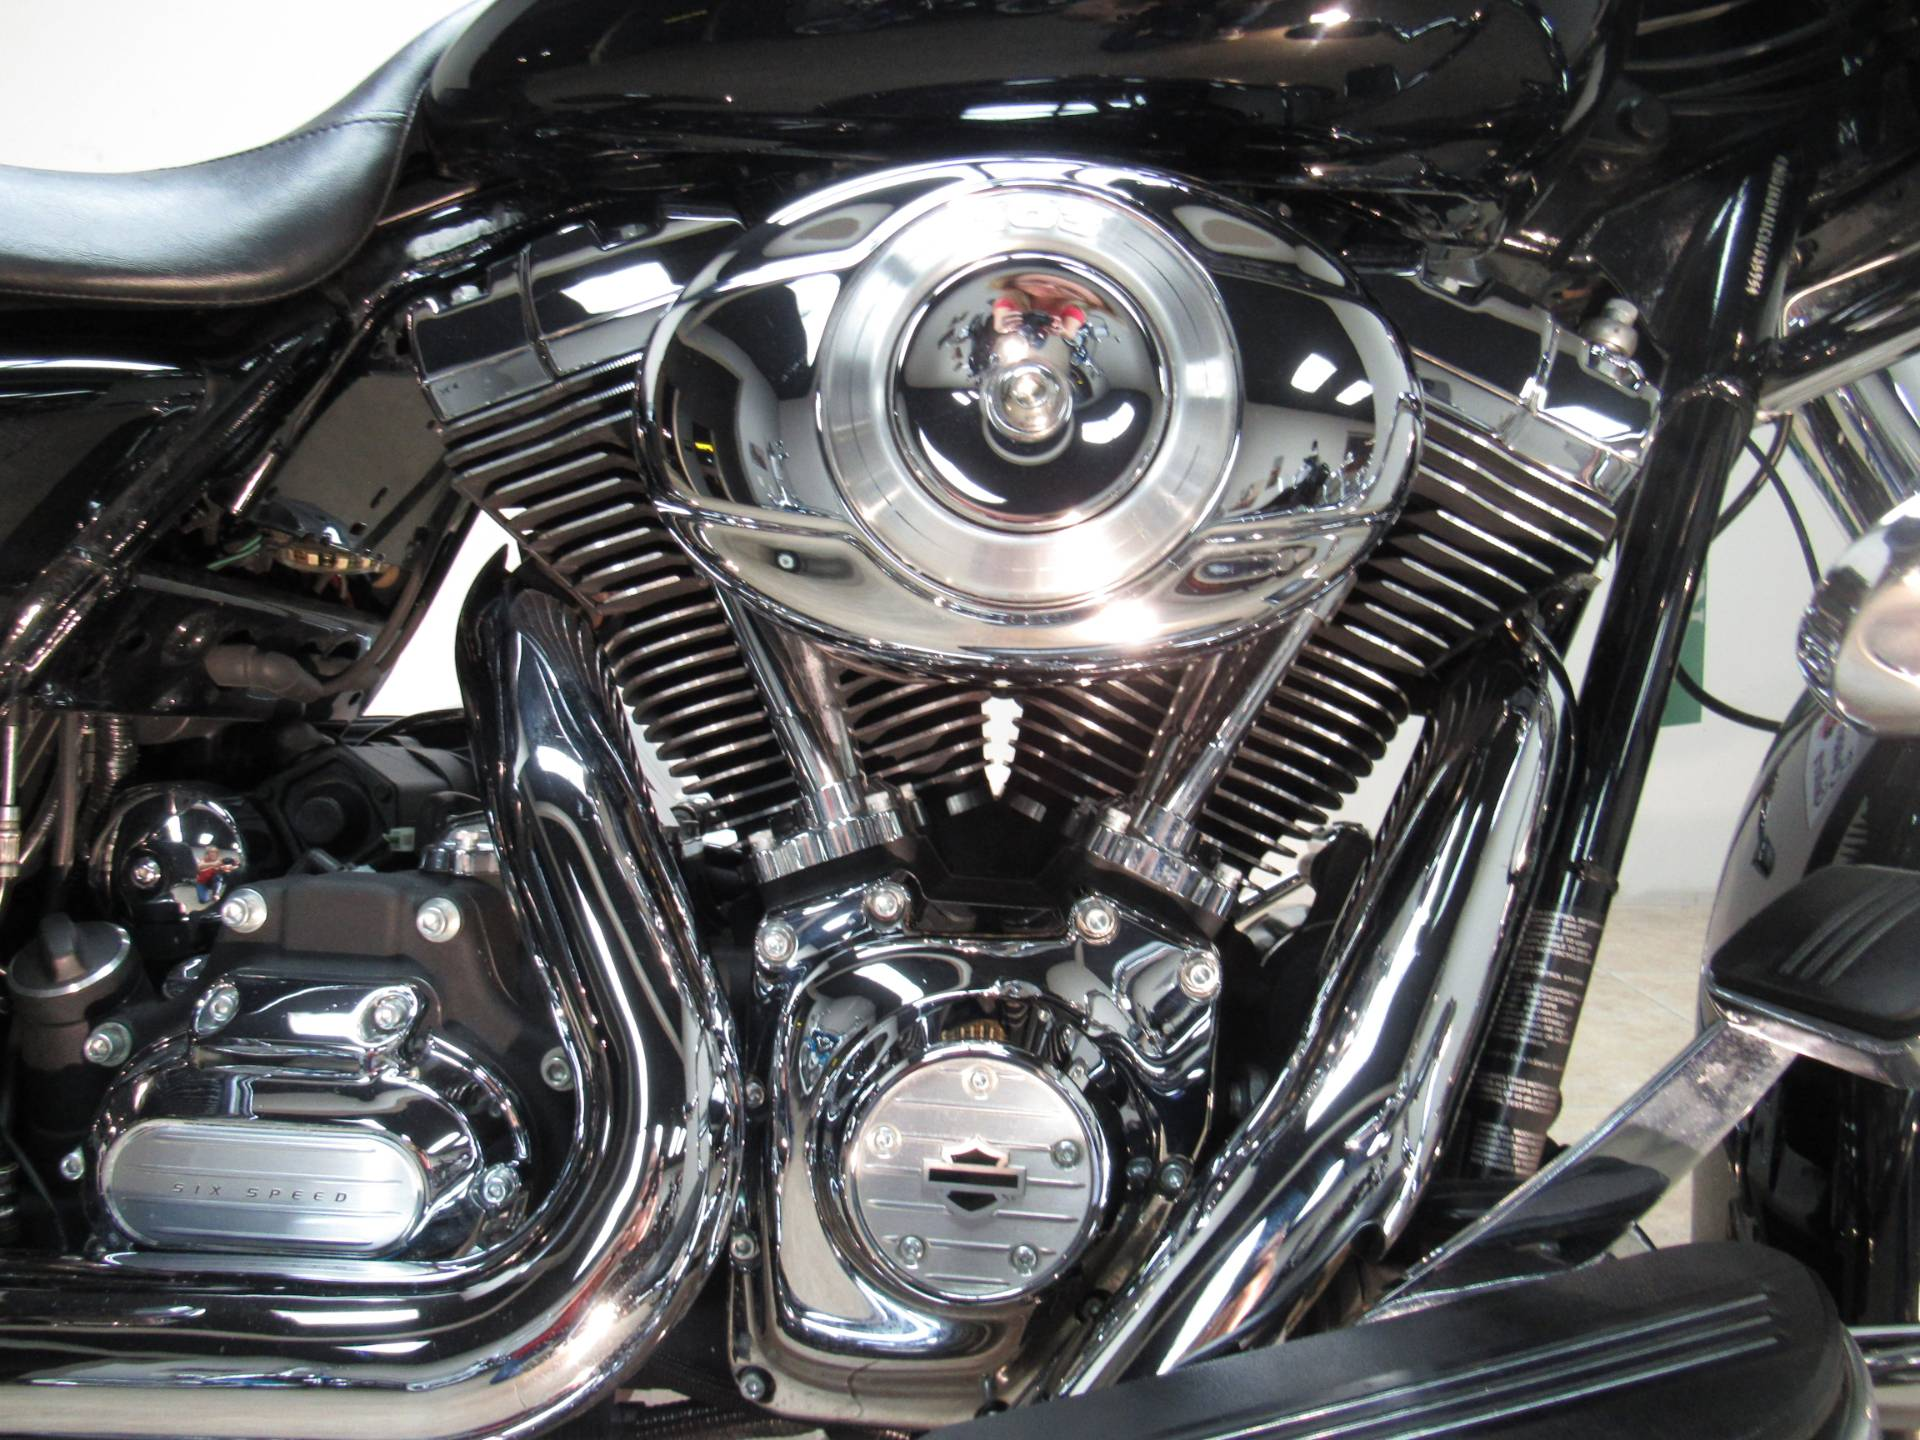 2012 Harley-Davidson Street Glide® in Temecula, California - Photo 12